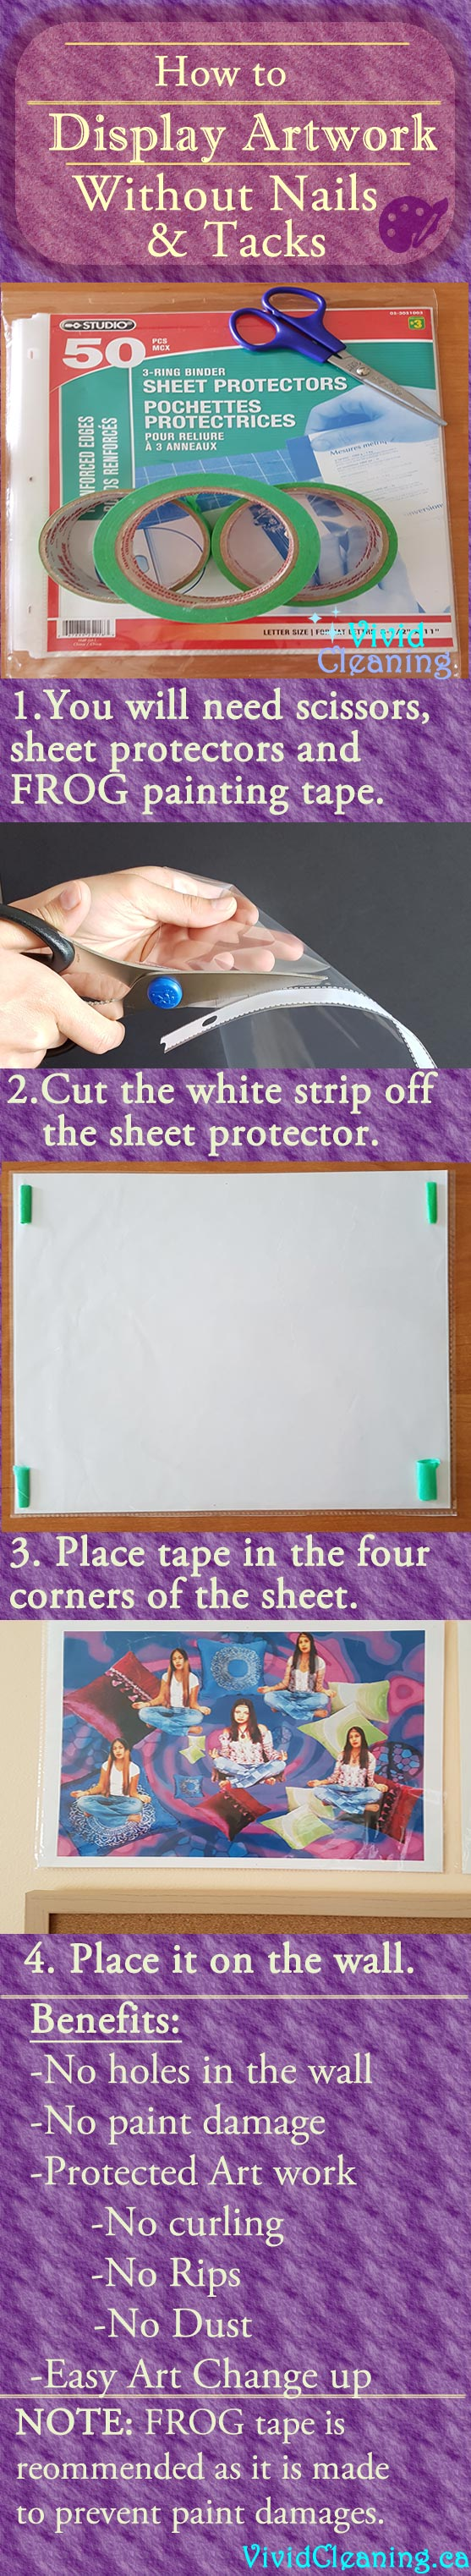 You will need protective sheets, scissors and painting tape. Start with cutting off the white edge on the protective sheet. Insert the artwork inside the sheet and turn it face down. Next apply tape to the four corners of the sheet. Place it on the wall space you want to display it.